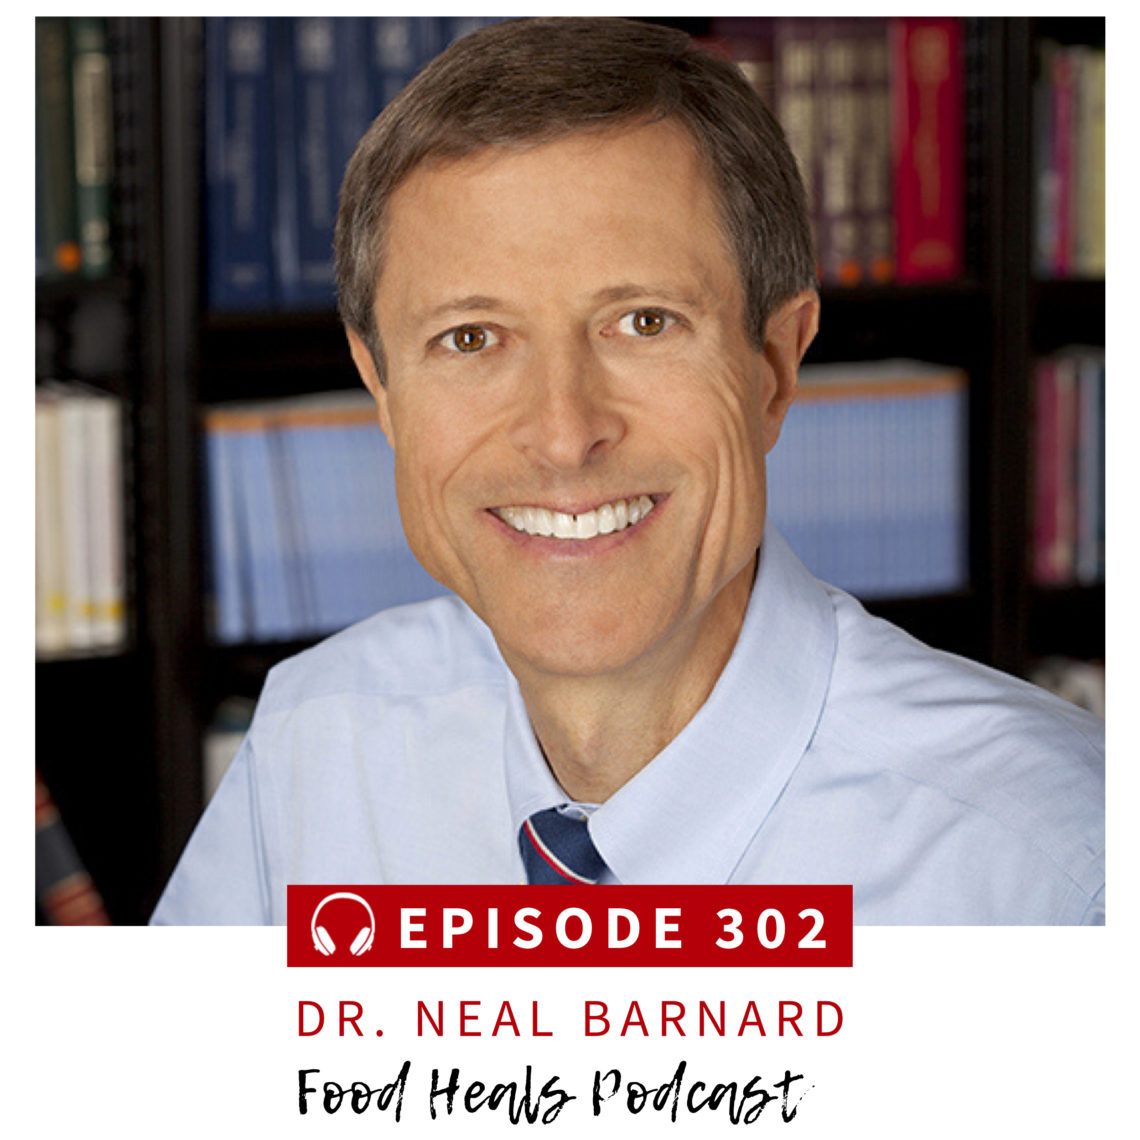 Dr. Neal Barnard joins Allison Melody on The Food Heals Podcast to Discuss What to Eat While Self Isolating to Keep Your Body In Balance.